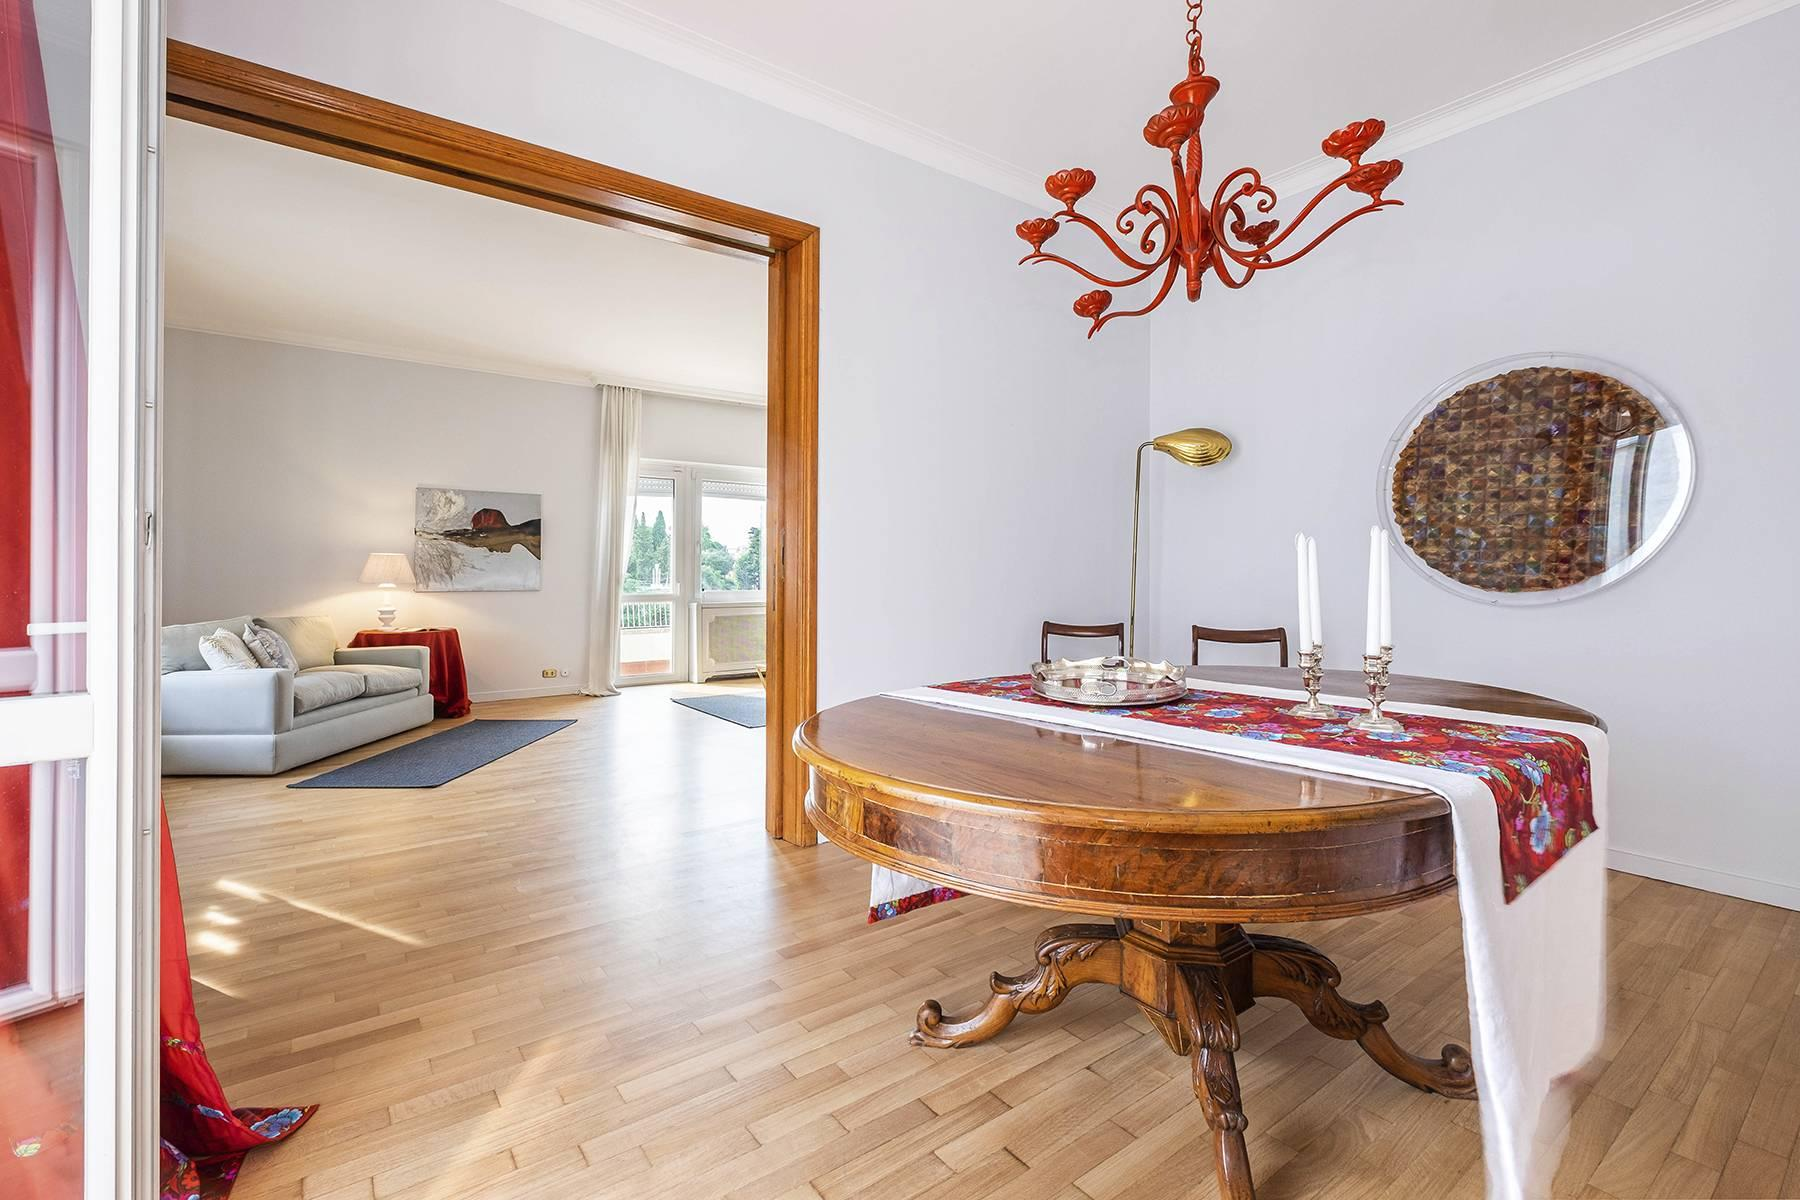 Modern penthouse with stunning 70 sqm terrace a stone's throw from Villa Borghese - 6